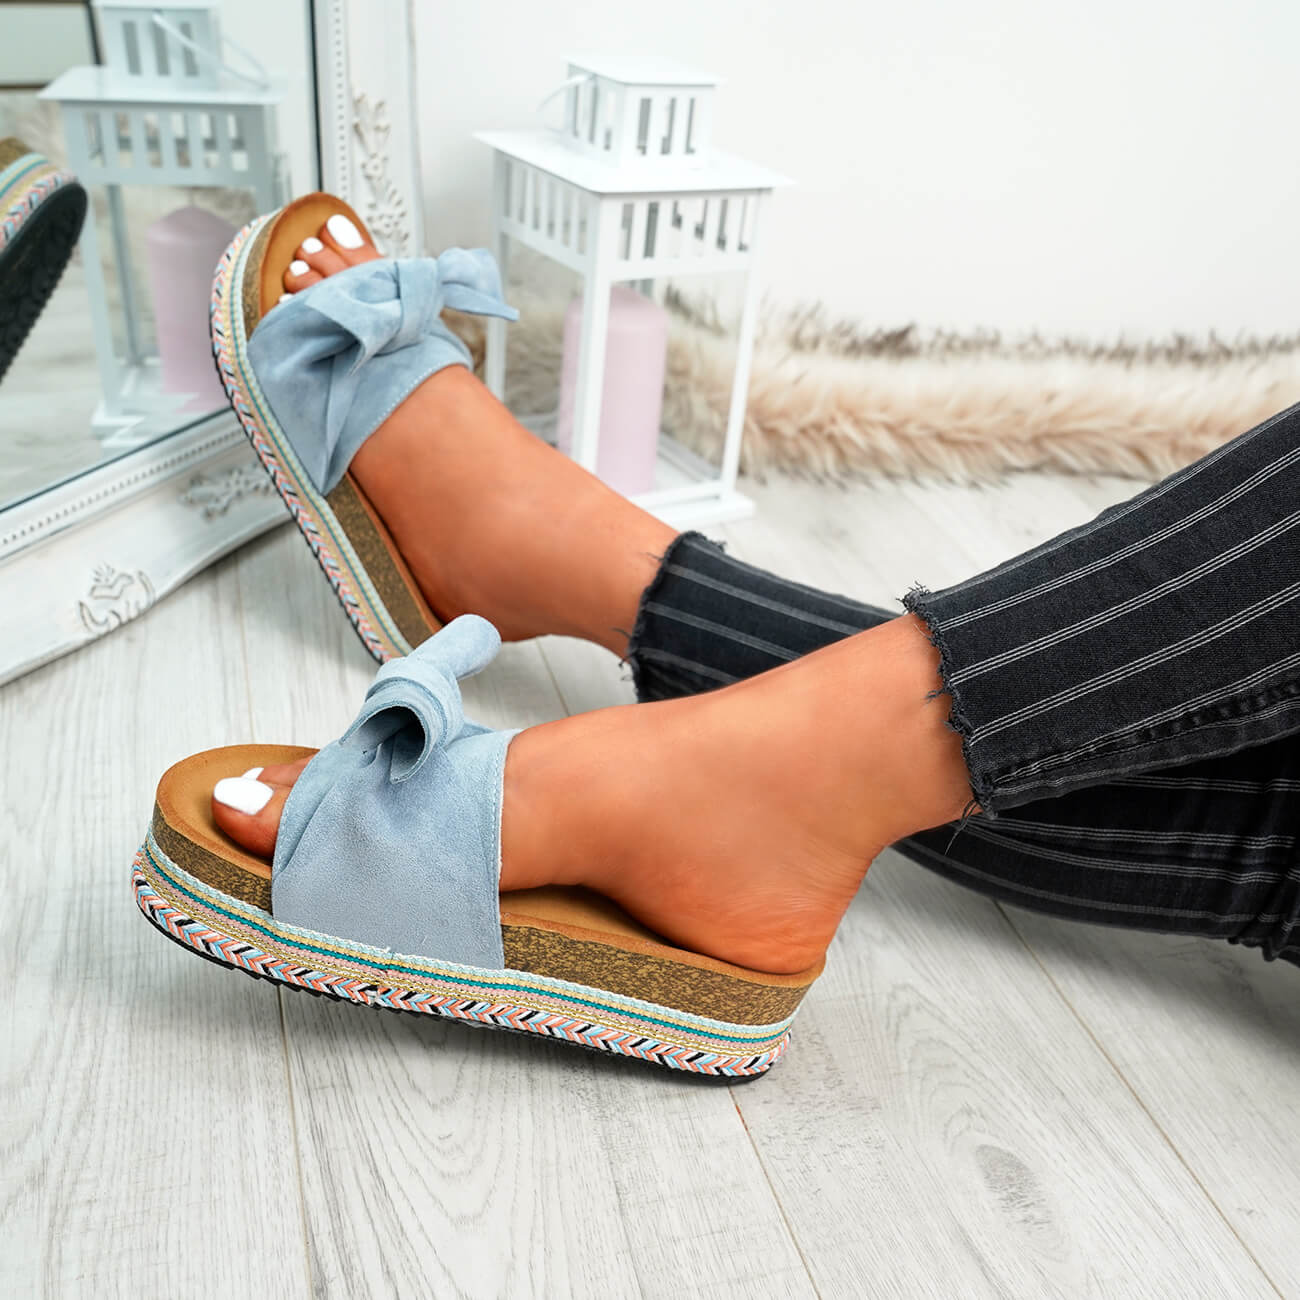 WOMENS-LADIES-BOW-SLIDERS-SLIP-ON-FLATFORMS-SUMMER-PARTY-SANDALS-SHOES-SIZE thumbnail 13